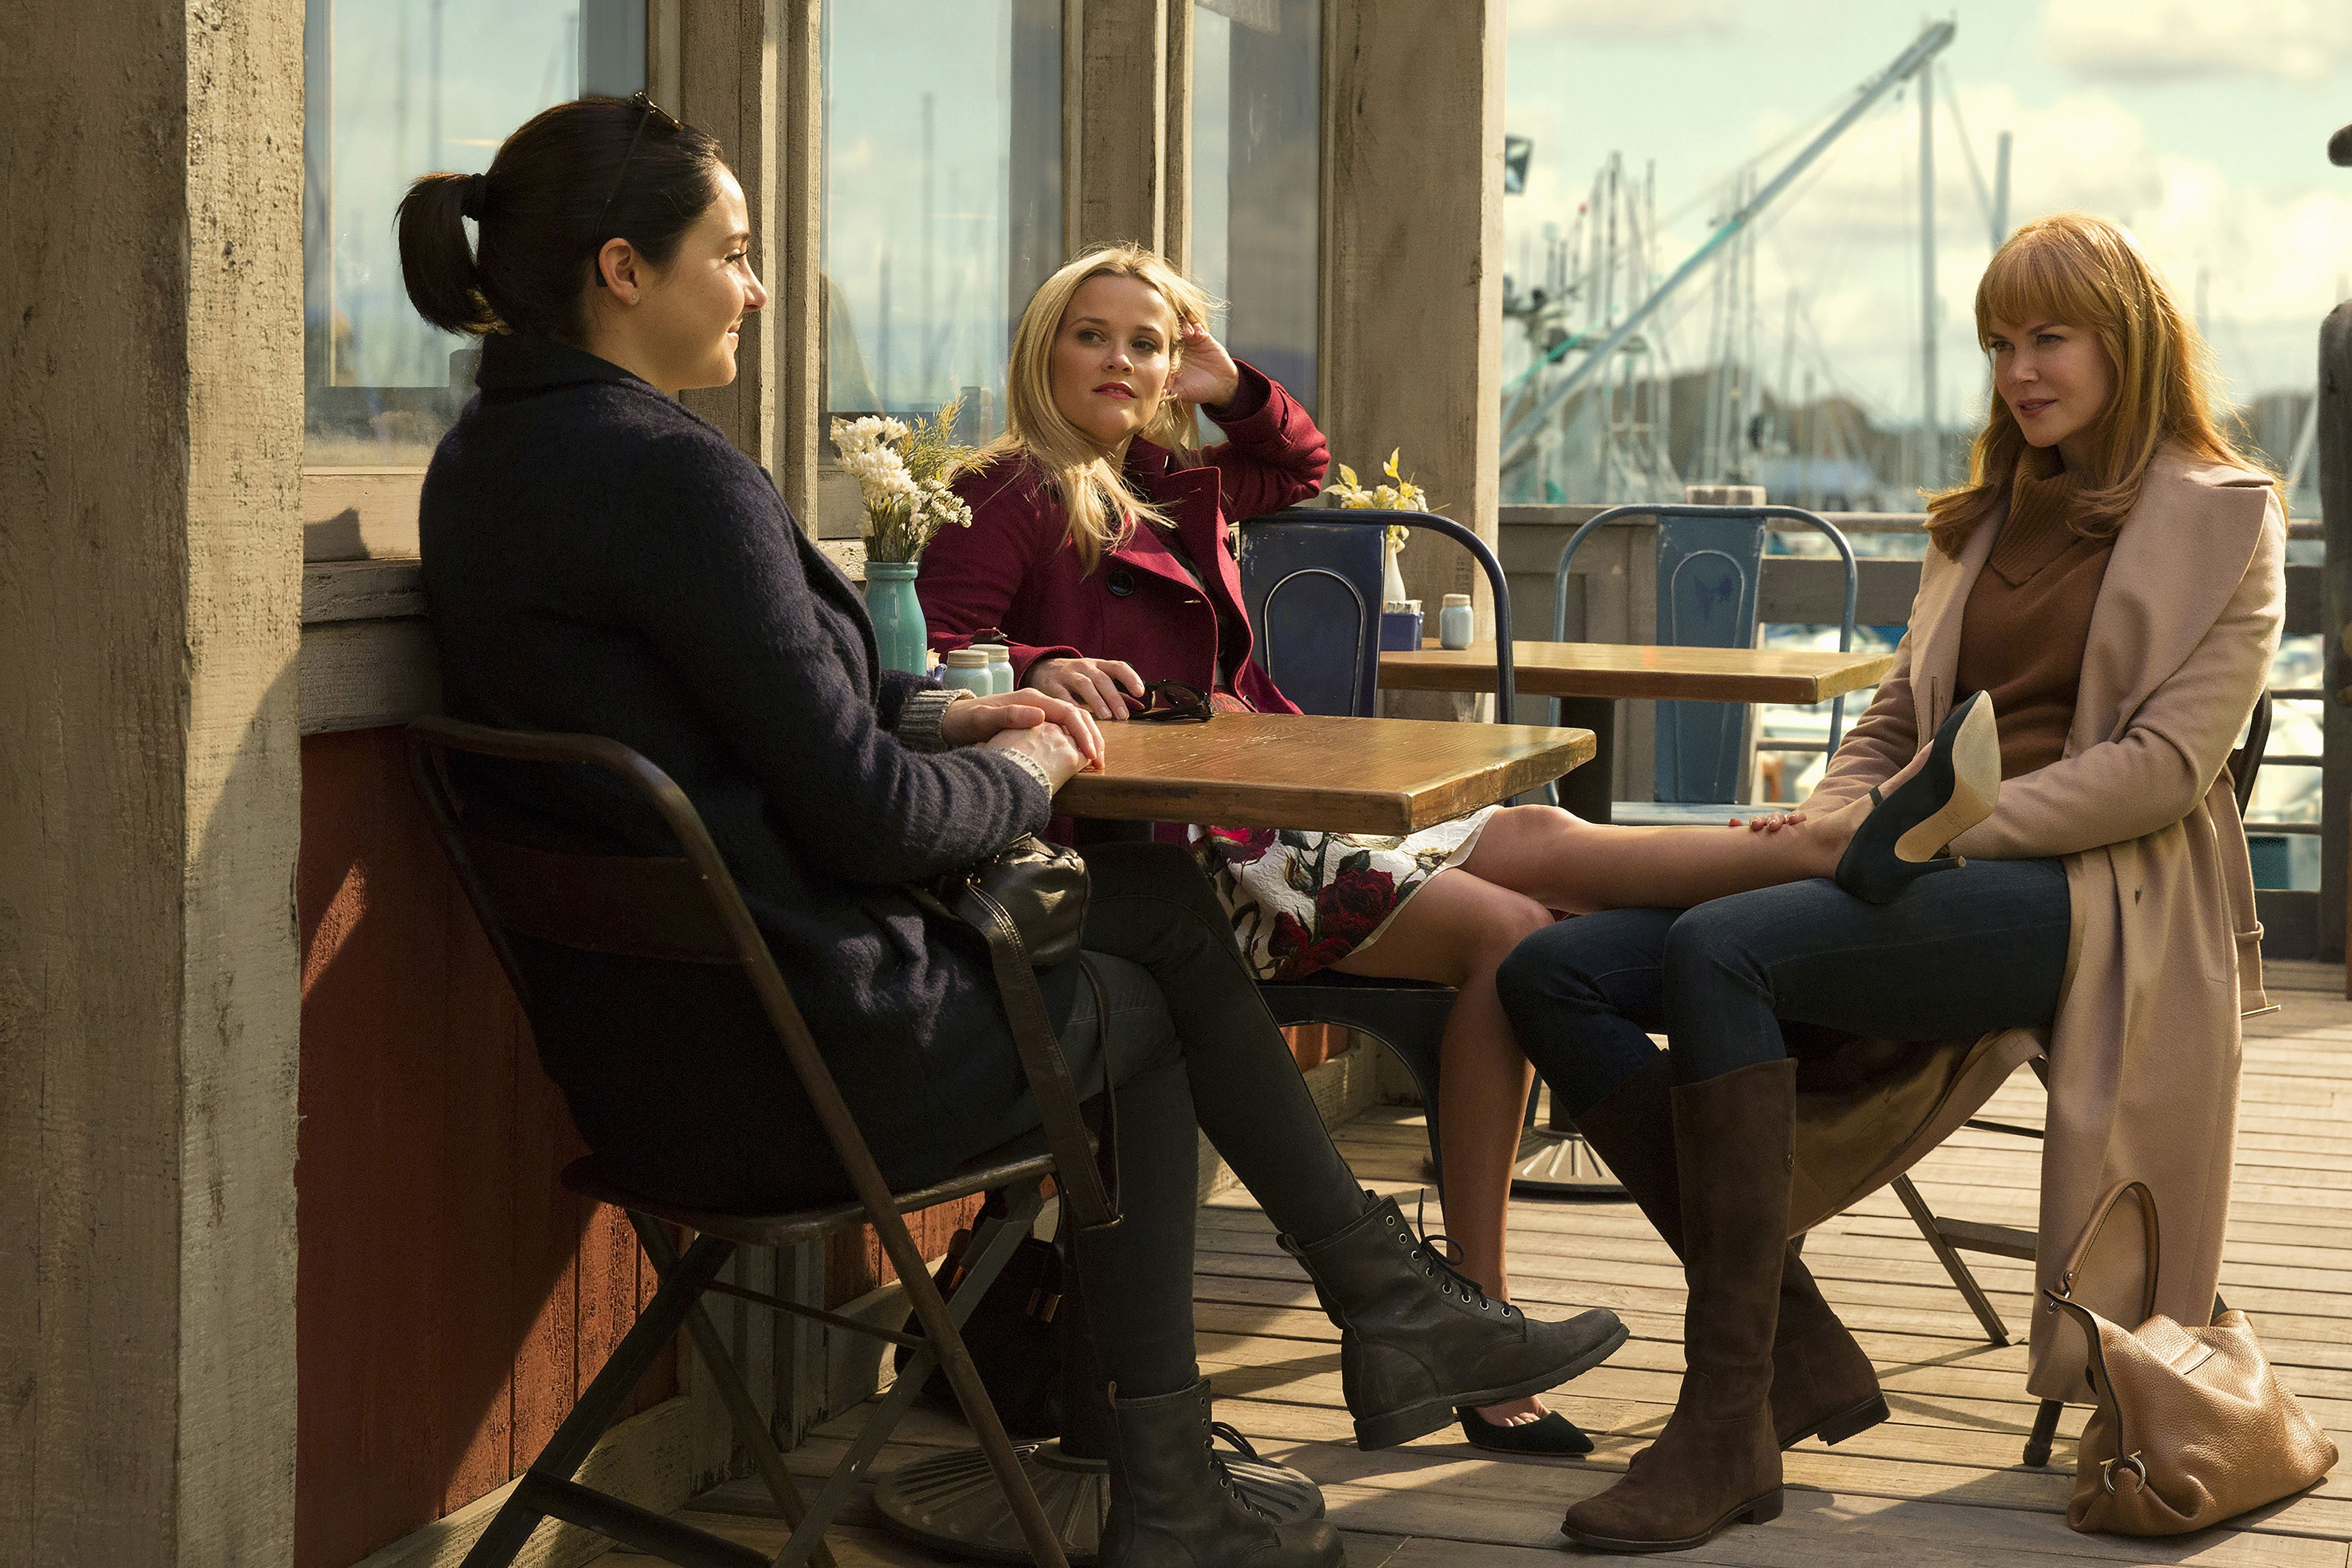 Big Little Lies Season 1 Recap - What Happened in Big Little Lies